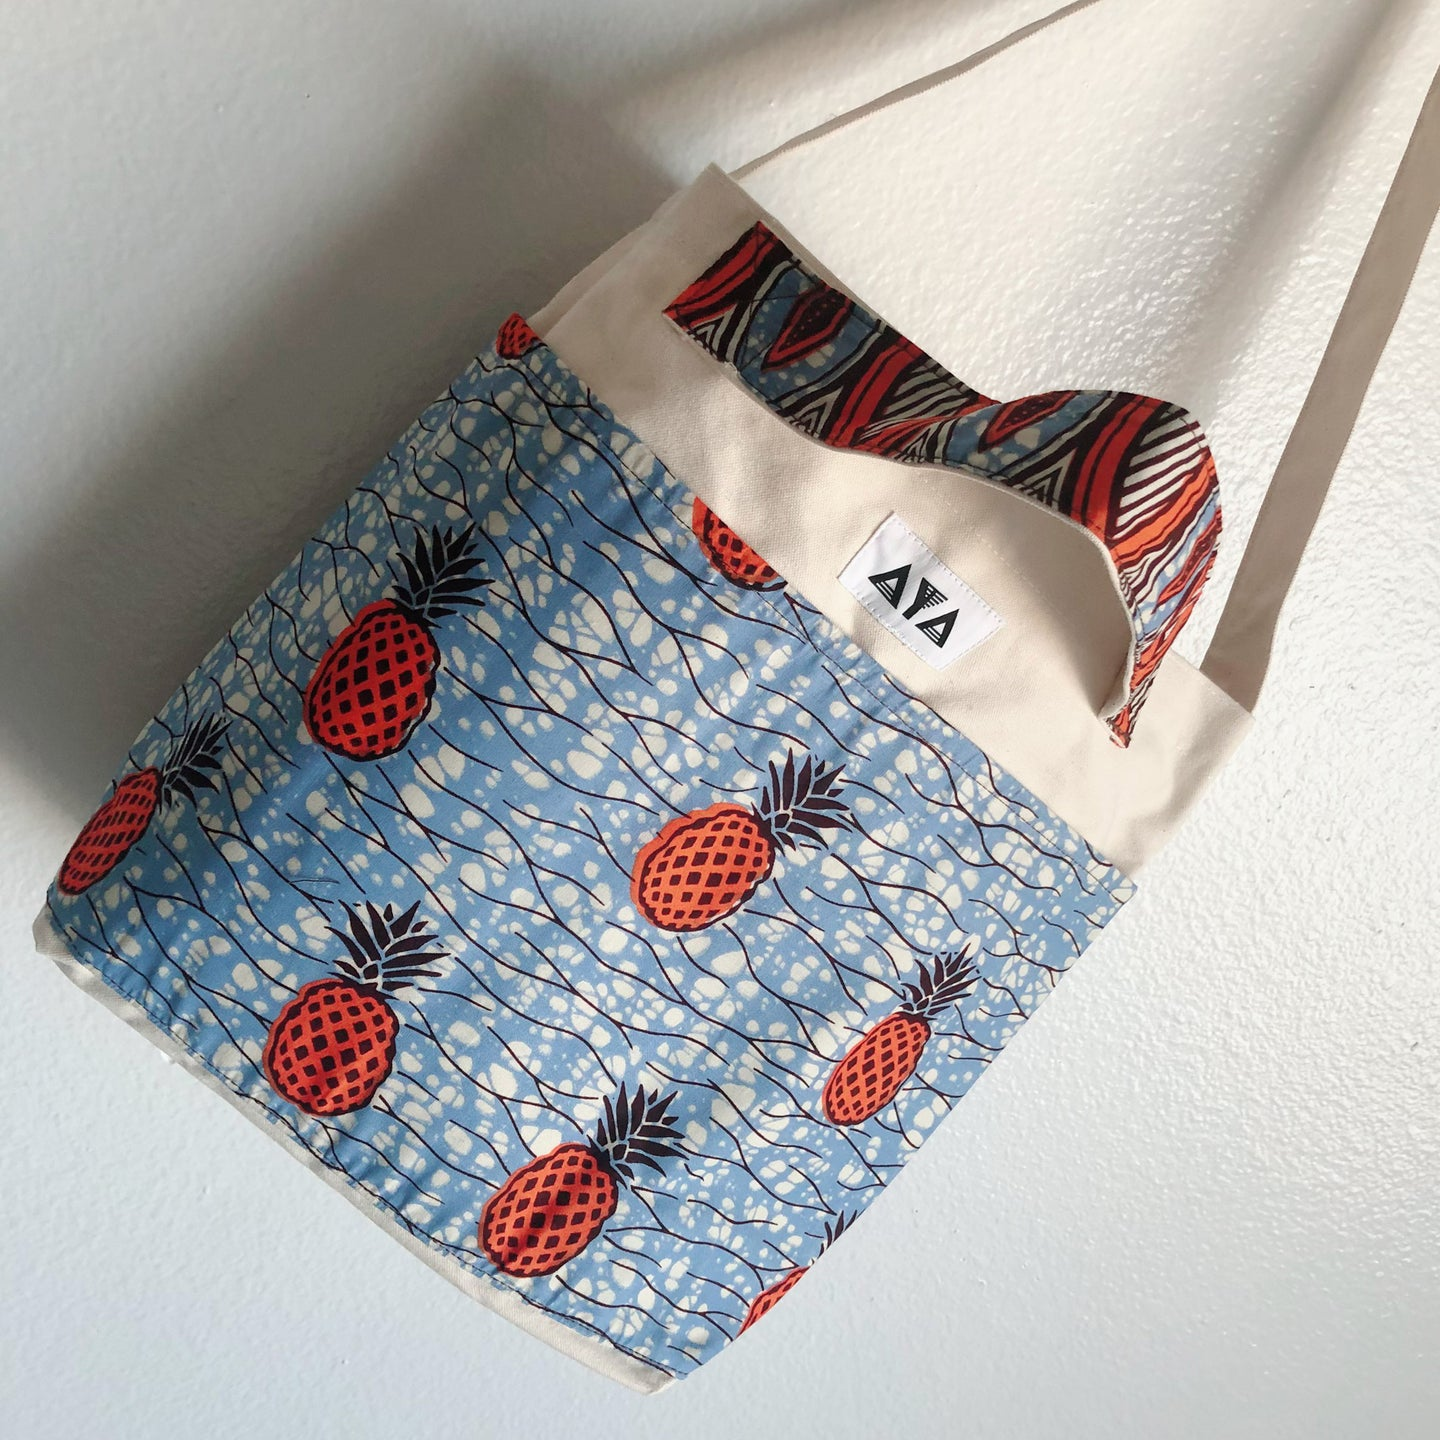 2WAY TOTE BAG [Orange Pineapple]